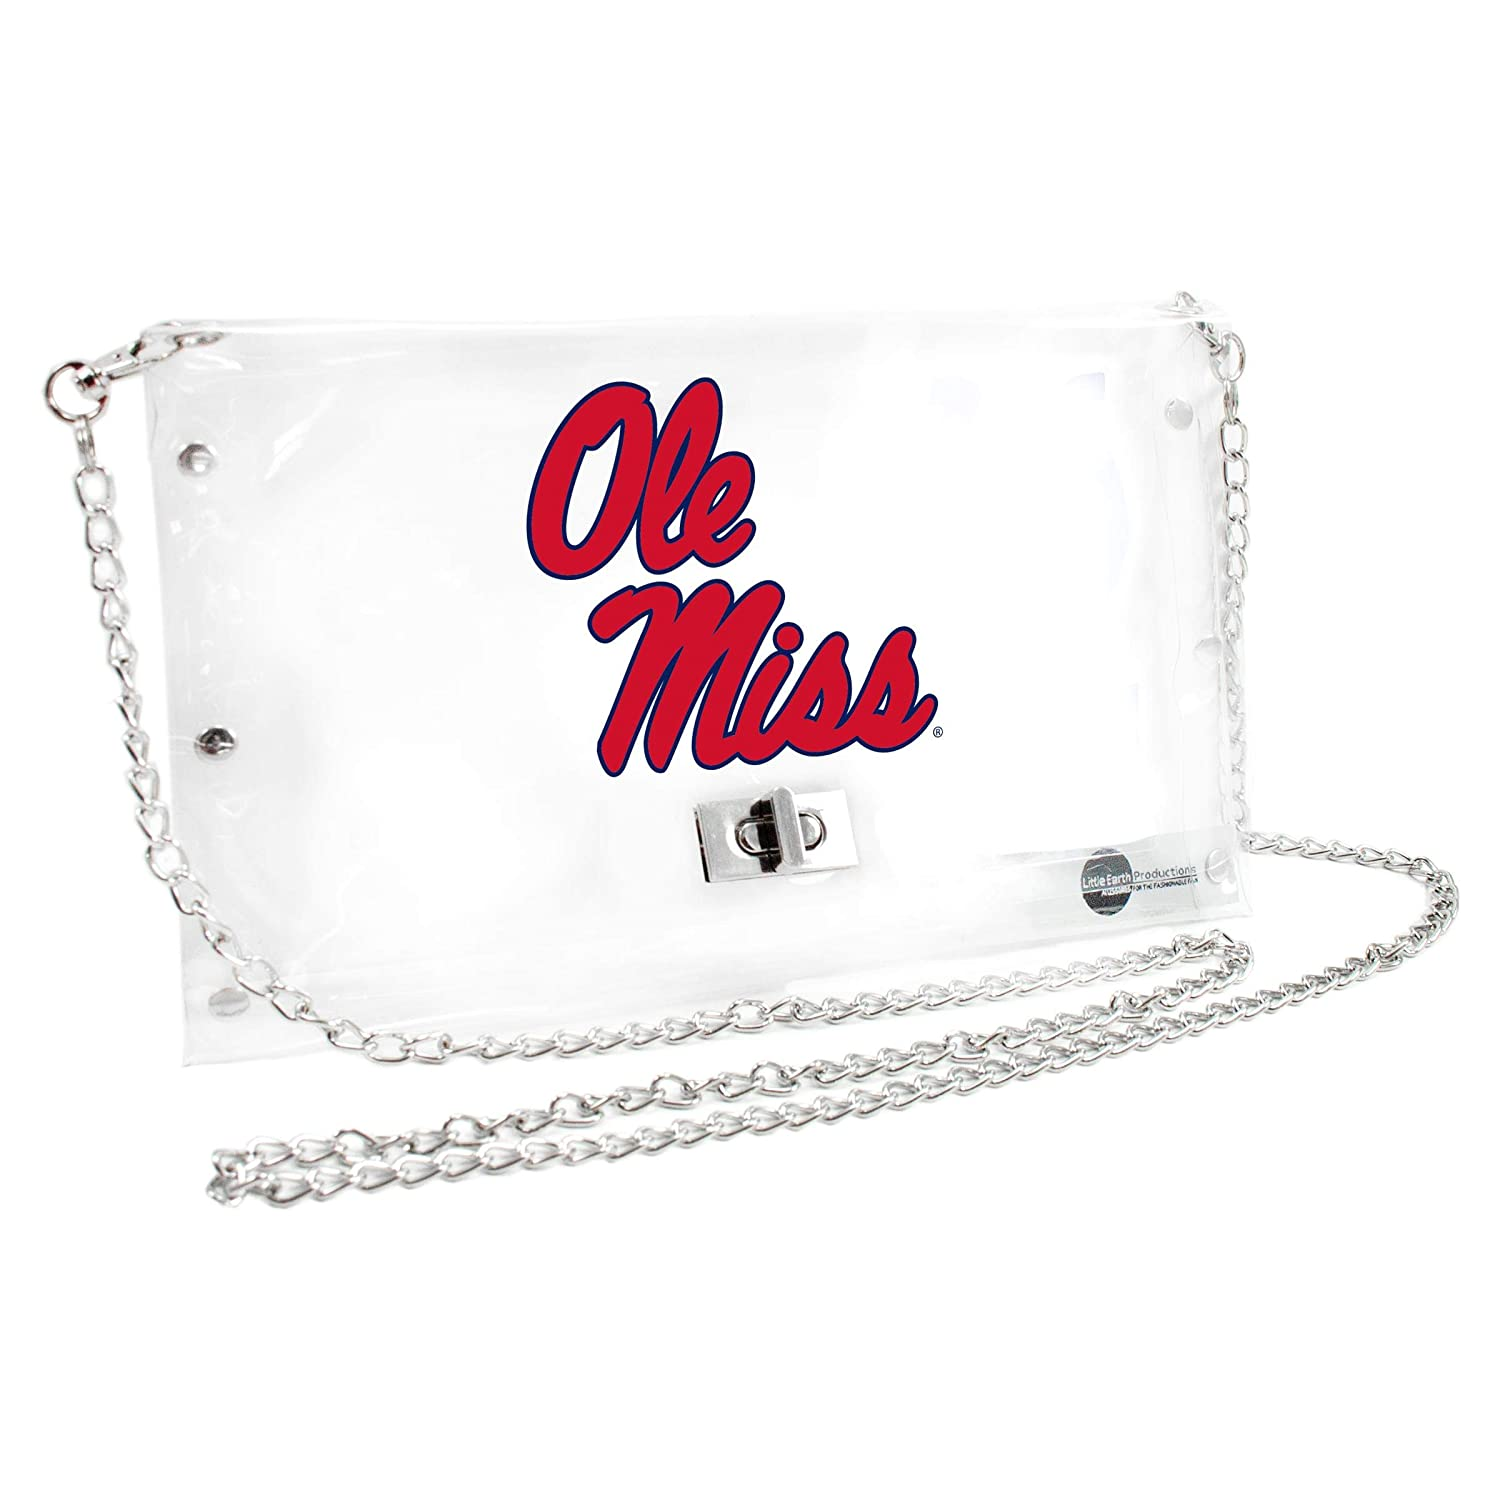 Inch Littlearth Mississippi Old Miss Rebels  NCAA Envelope Purse Clear 10 x 0.5 x 6.5